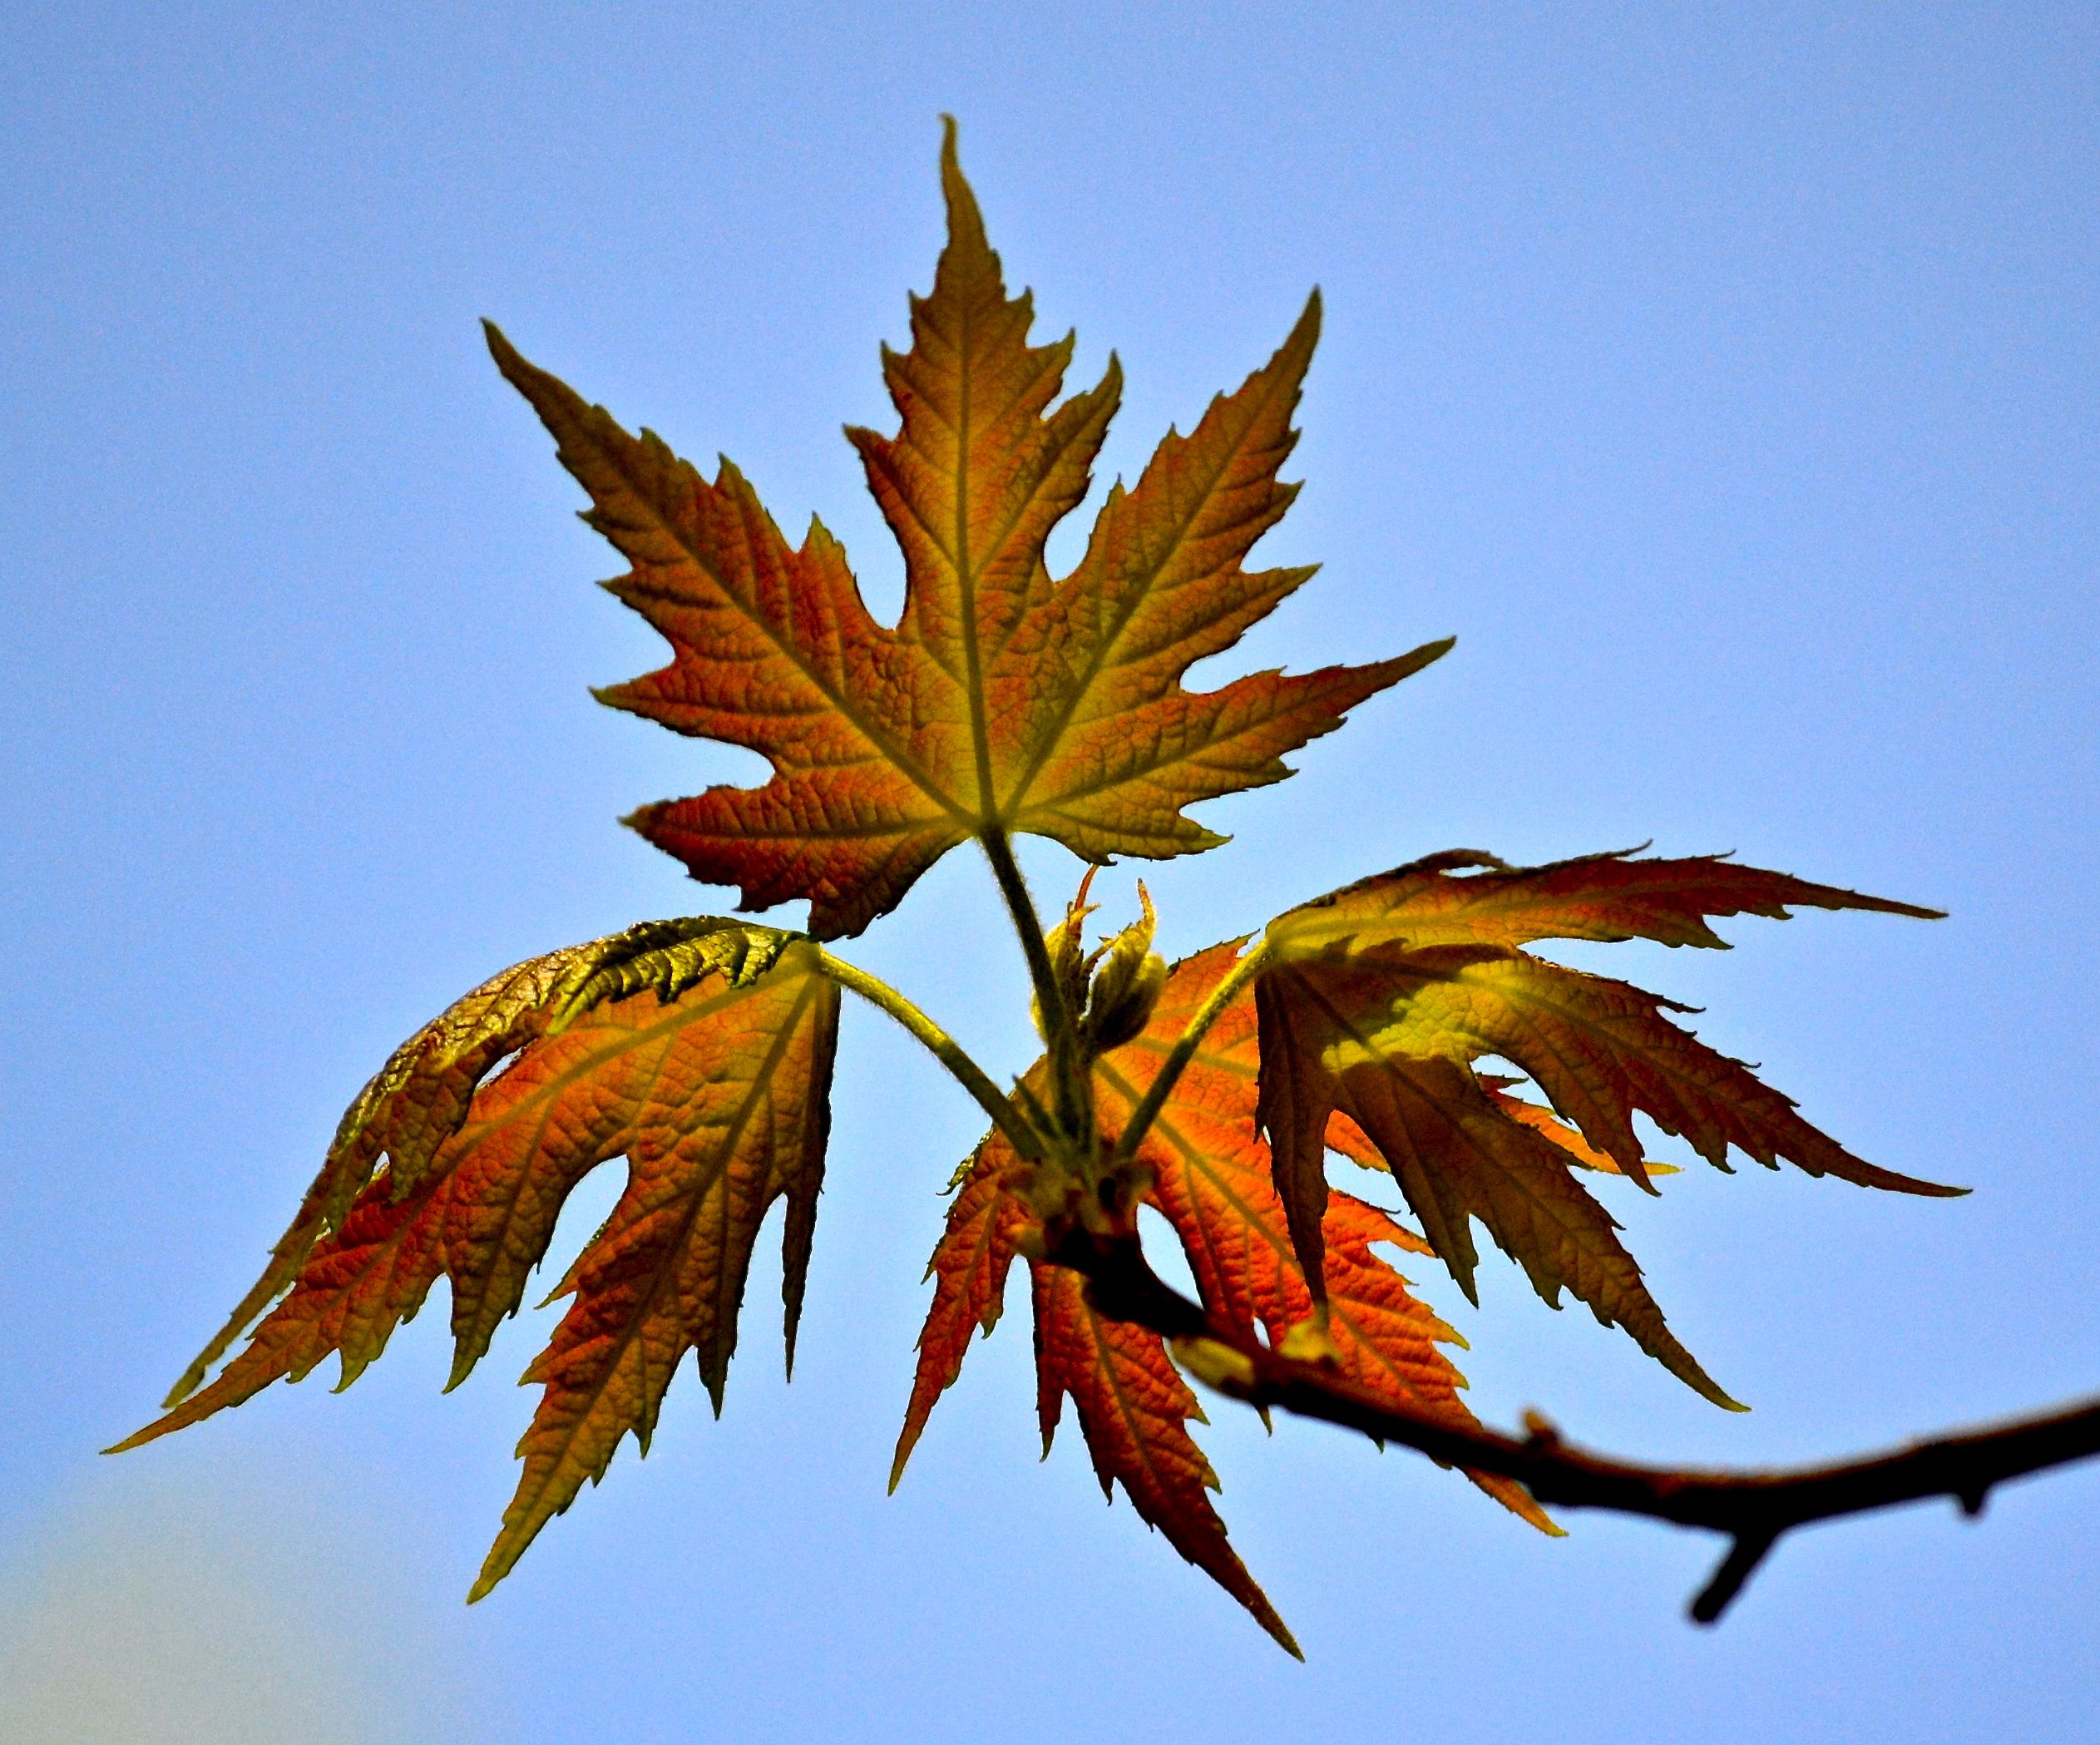 Spring Leaves Autumn Colors Silver Maple In Early Spring Silver Maple Leaf Silver Maple Fall Colors